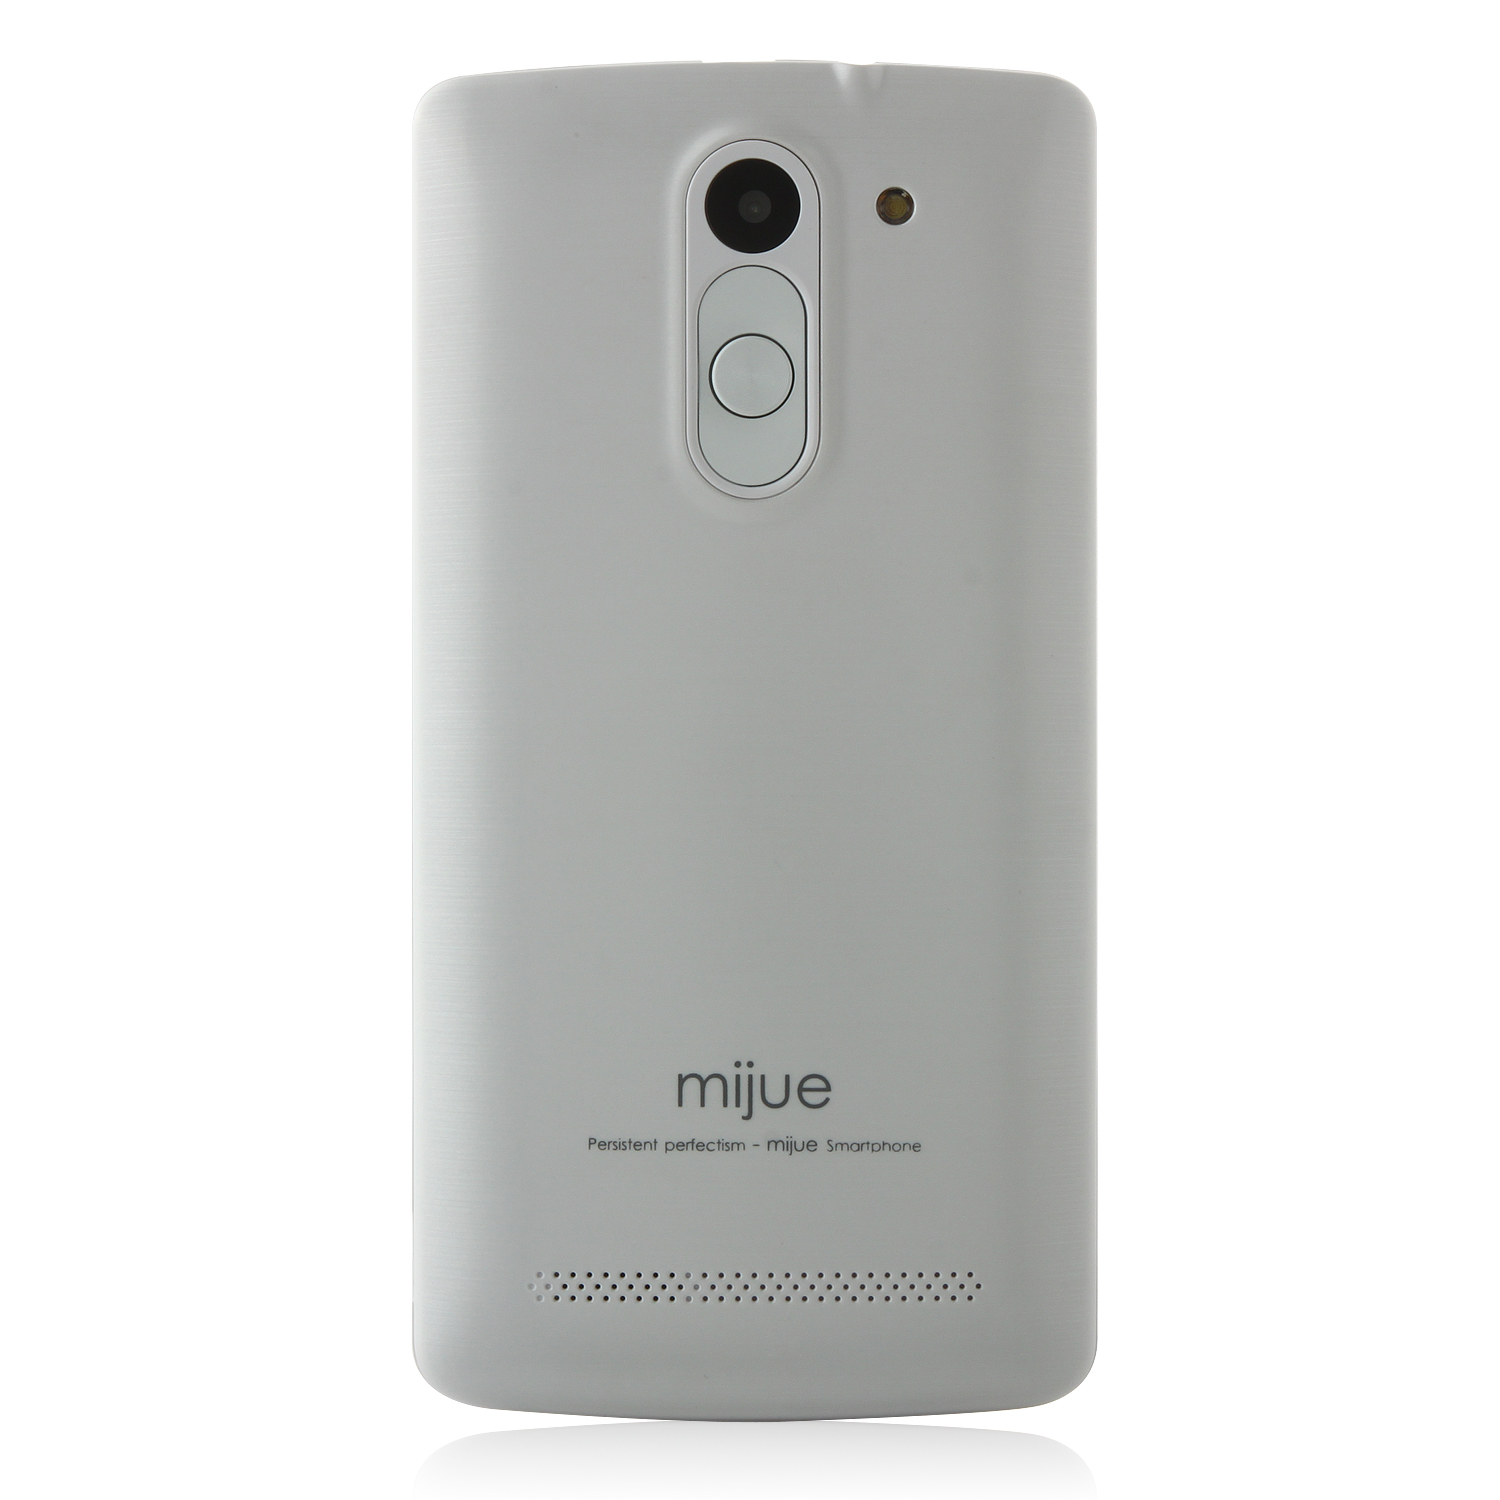 Mijue G3 Smartphone Android 4.4 MTK6572 Dual Core 5.0 Inch Smart Wake Air Gesture White